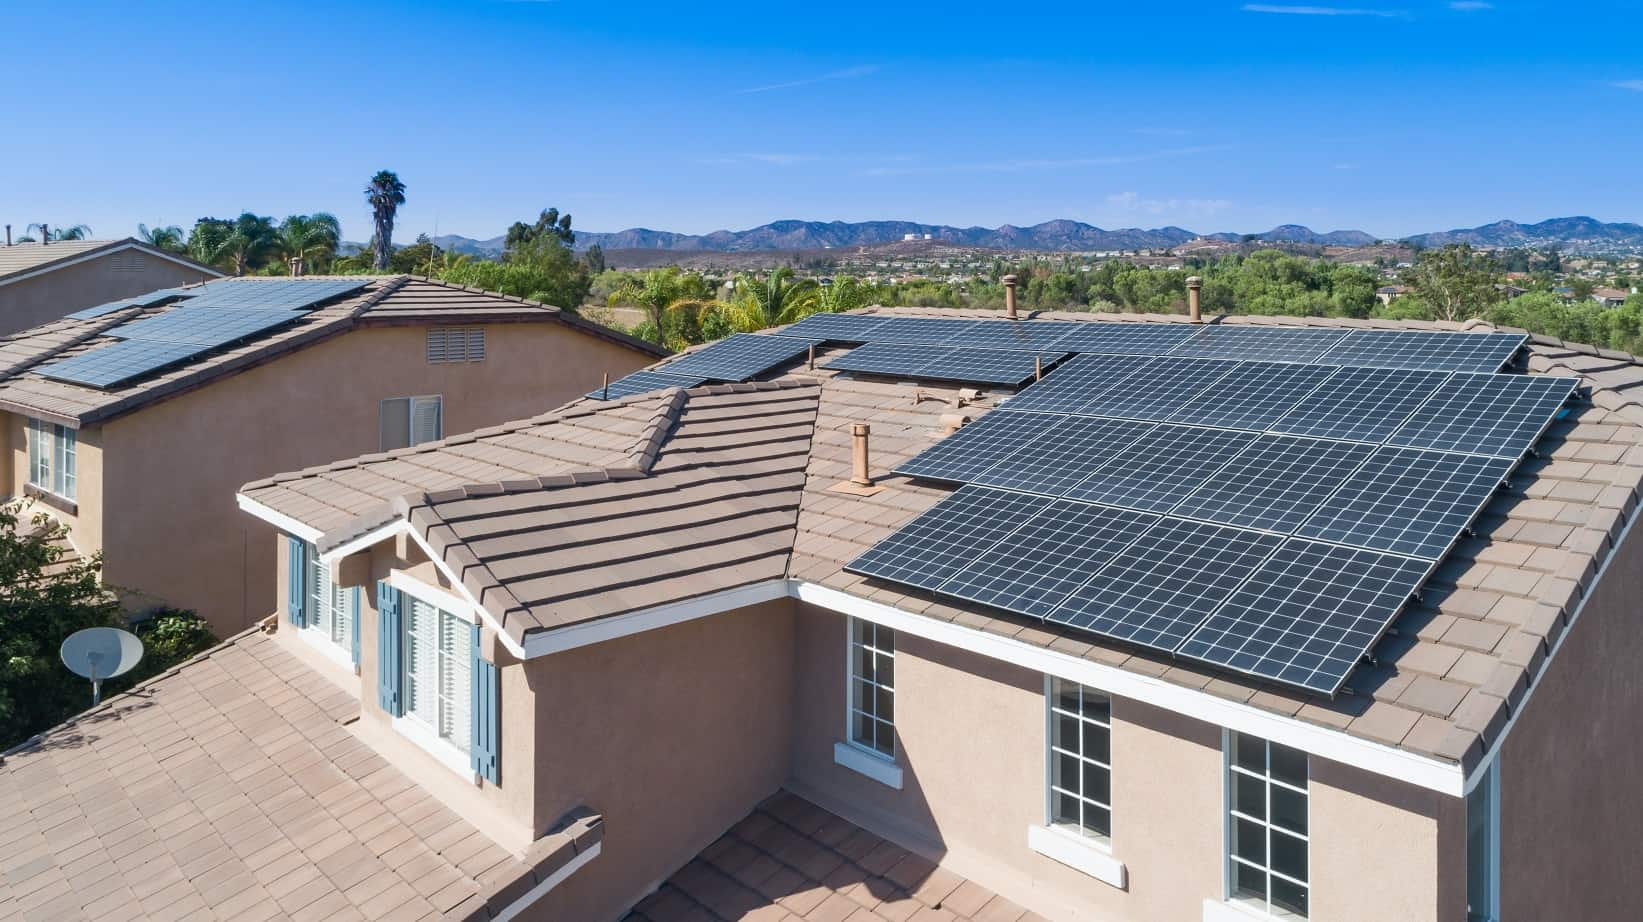 How To Pick The Right Solar System For Your Home. The whole cottage's roof covered with solar panels